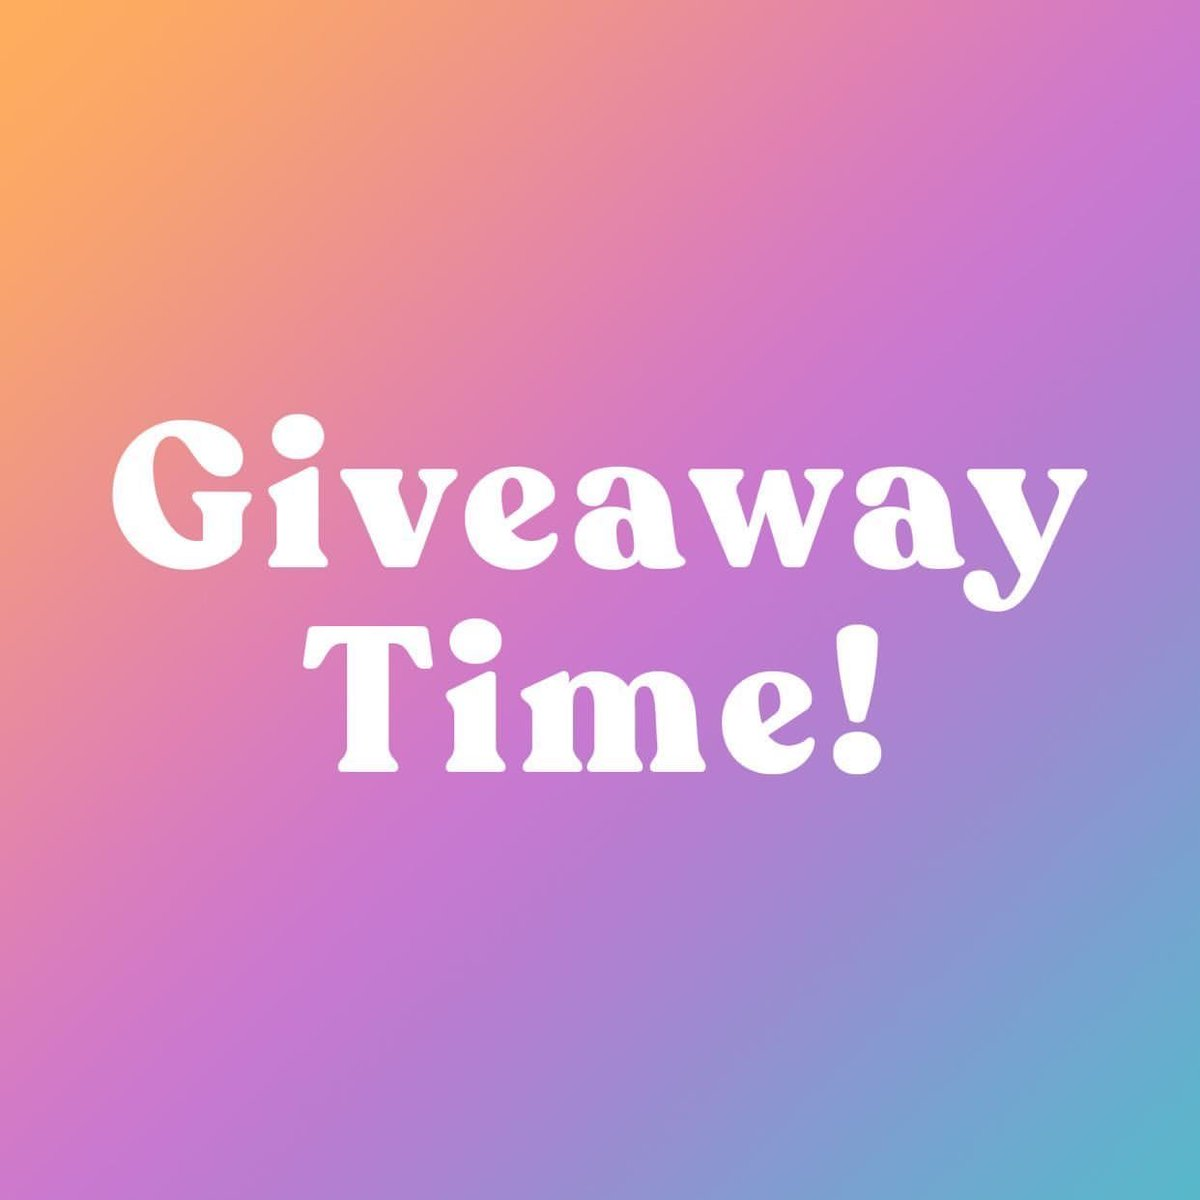 ‼️‼️GiVEAWAY TiME‼️‼️  She reached 💯 followers and want to thank you all with a with a giveaway 🙃 ON INSTAGRAM* 👉👉Must follow = @c.c.creativity & @floriiitas_closet   ❌Giveaway ends 1/23/2021❌  #giveaway #giveawaycontest #giveawaytime #giveawayalert #sorteo #freegiveaways